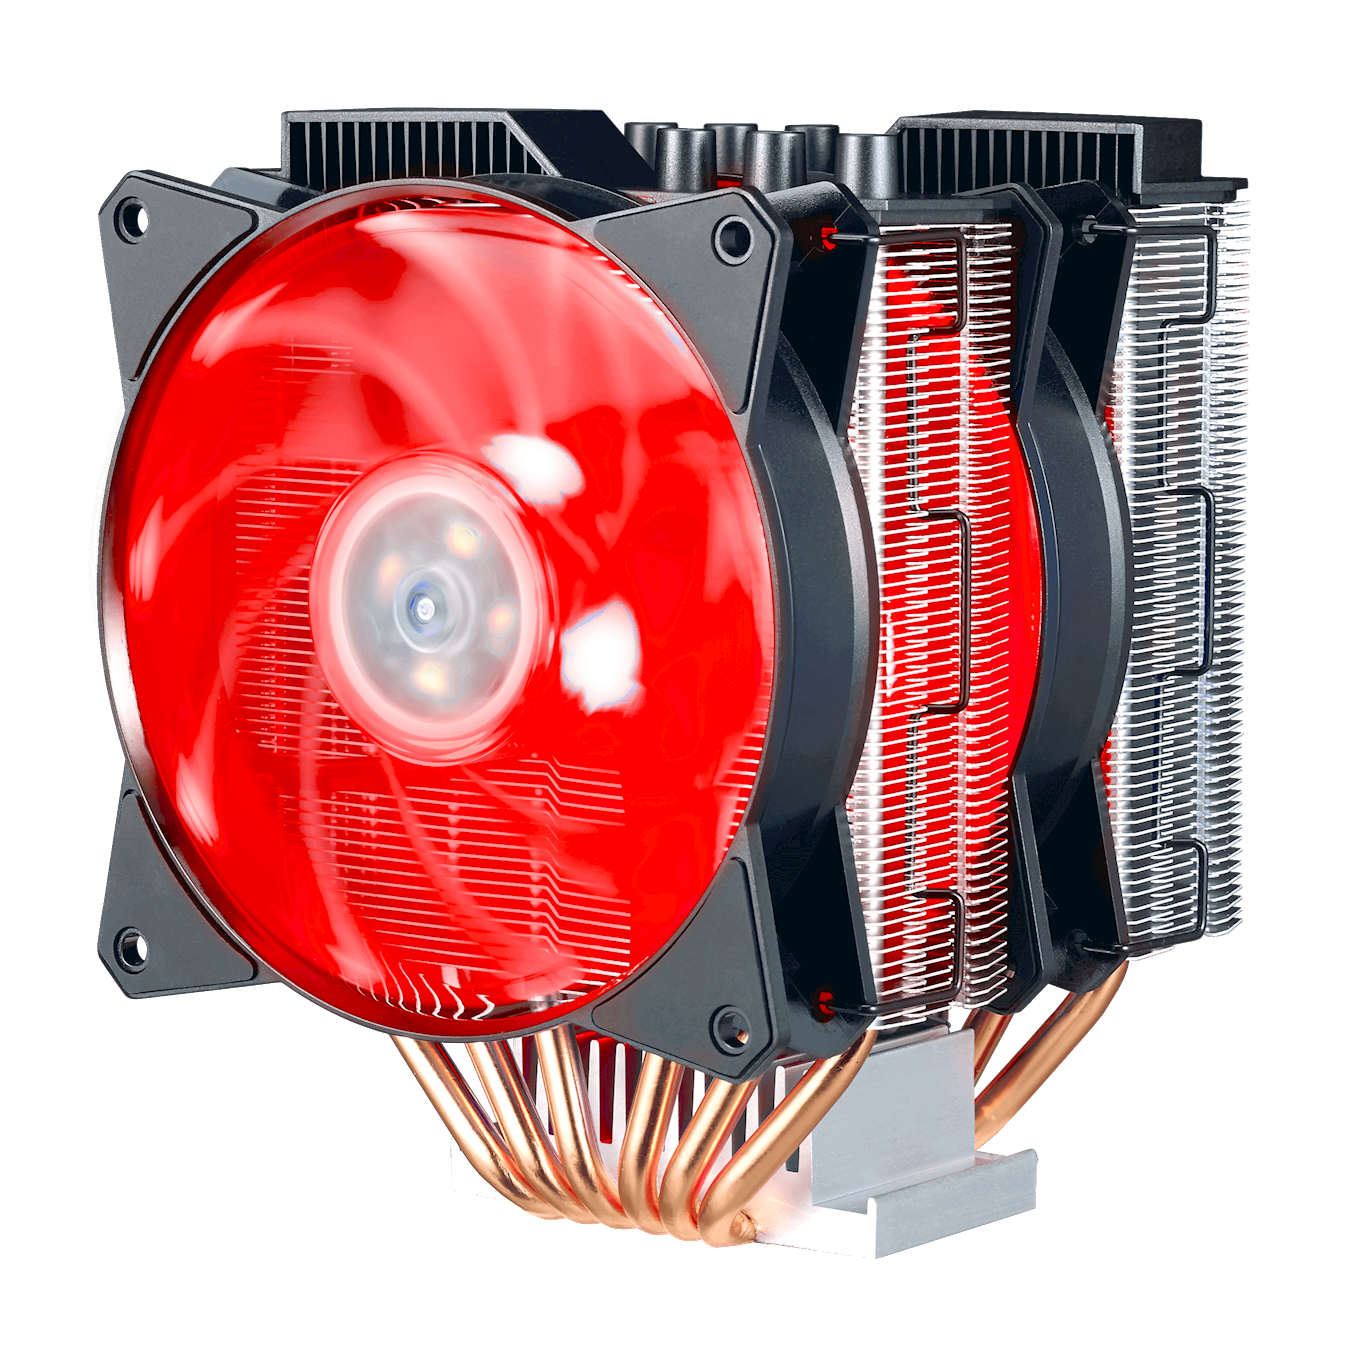 MasterAir MA620P has 6 x heatpipes for fast transfer of heat, to make sure the CPU is running at optimal performance.